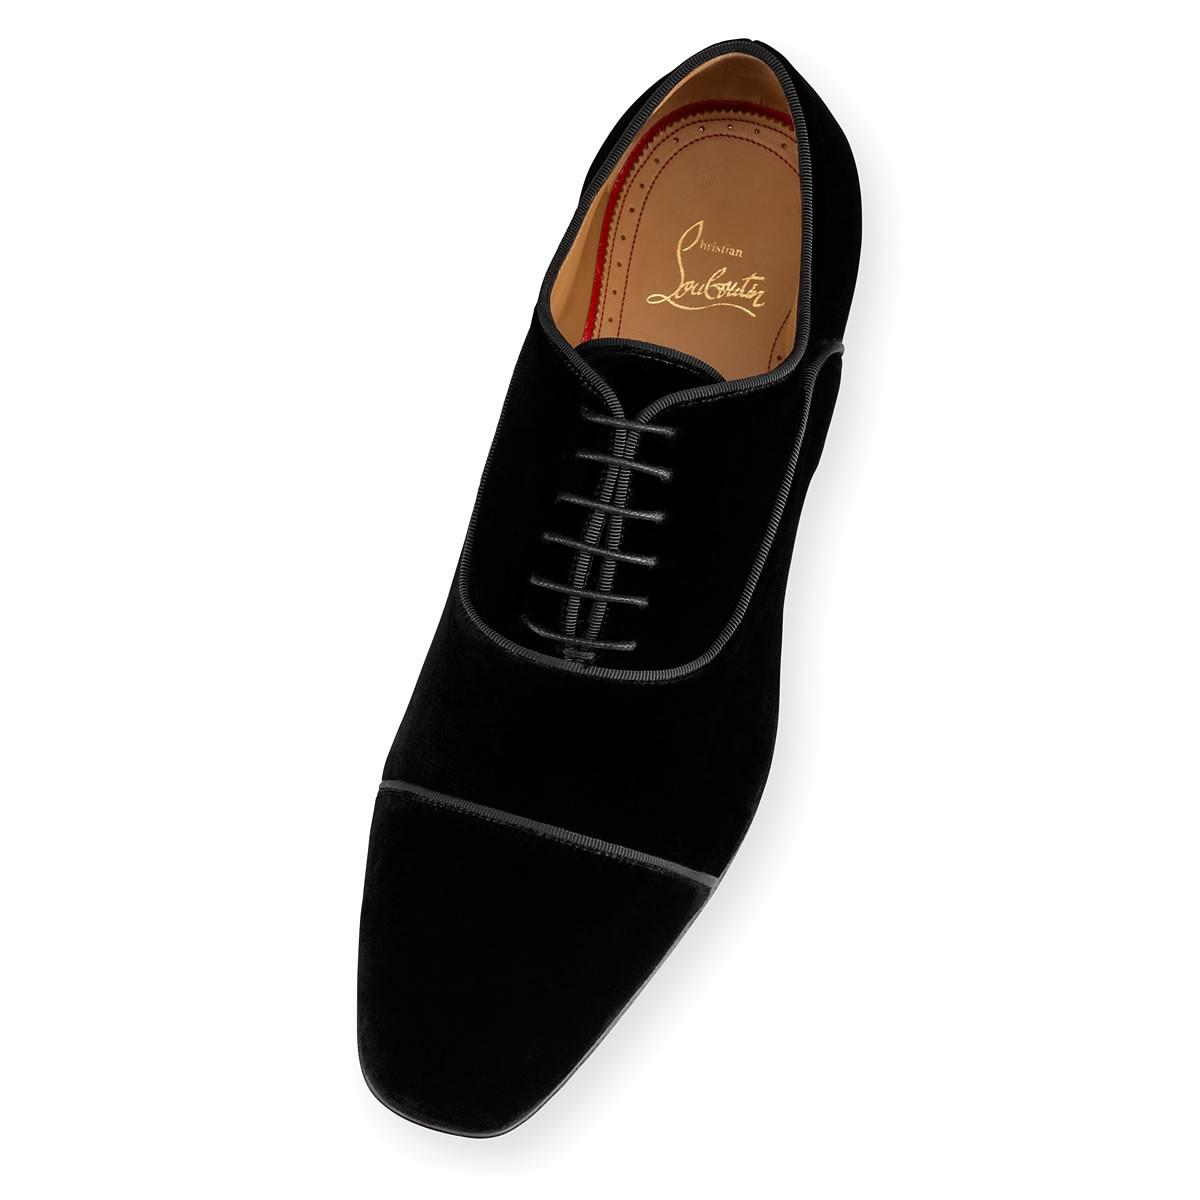 8213cab0810a ... promo code lyst christian louboutin lord cubano flat in black for men  fb61a e9183